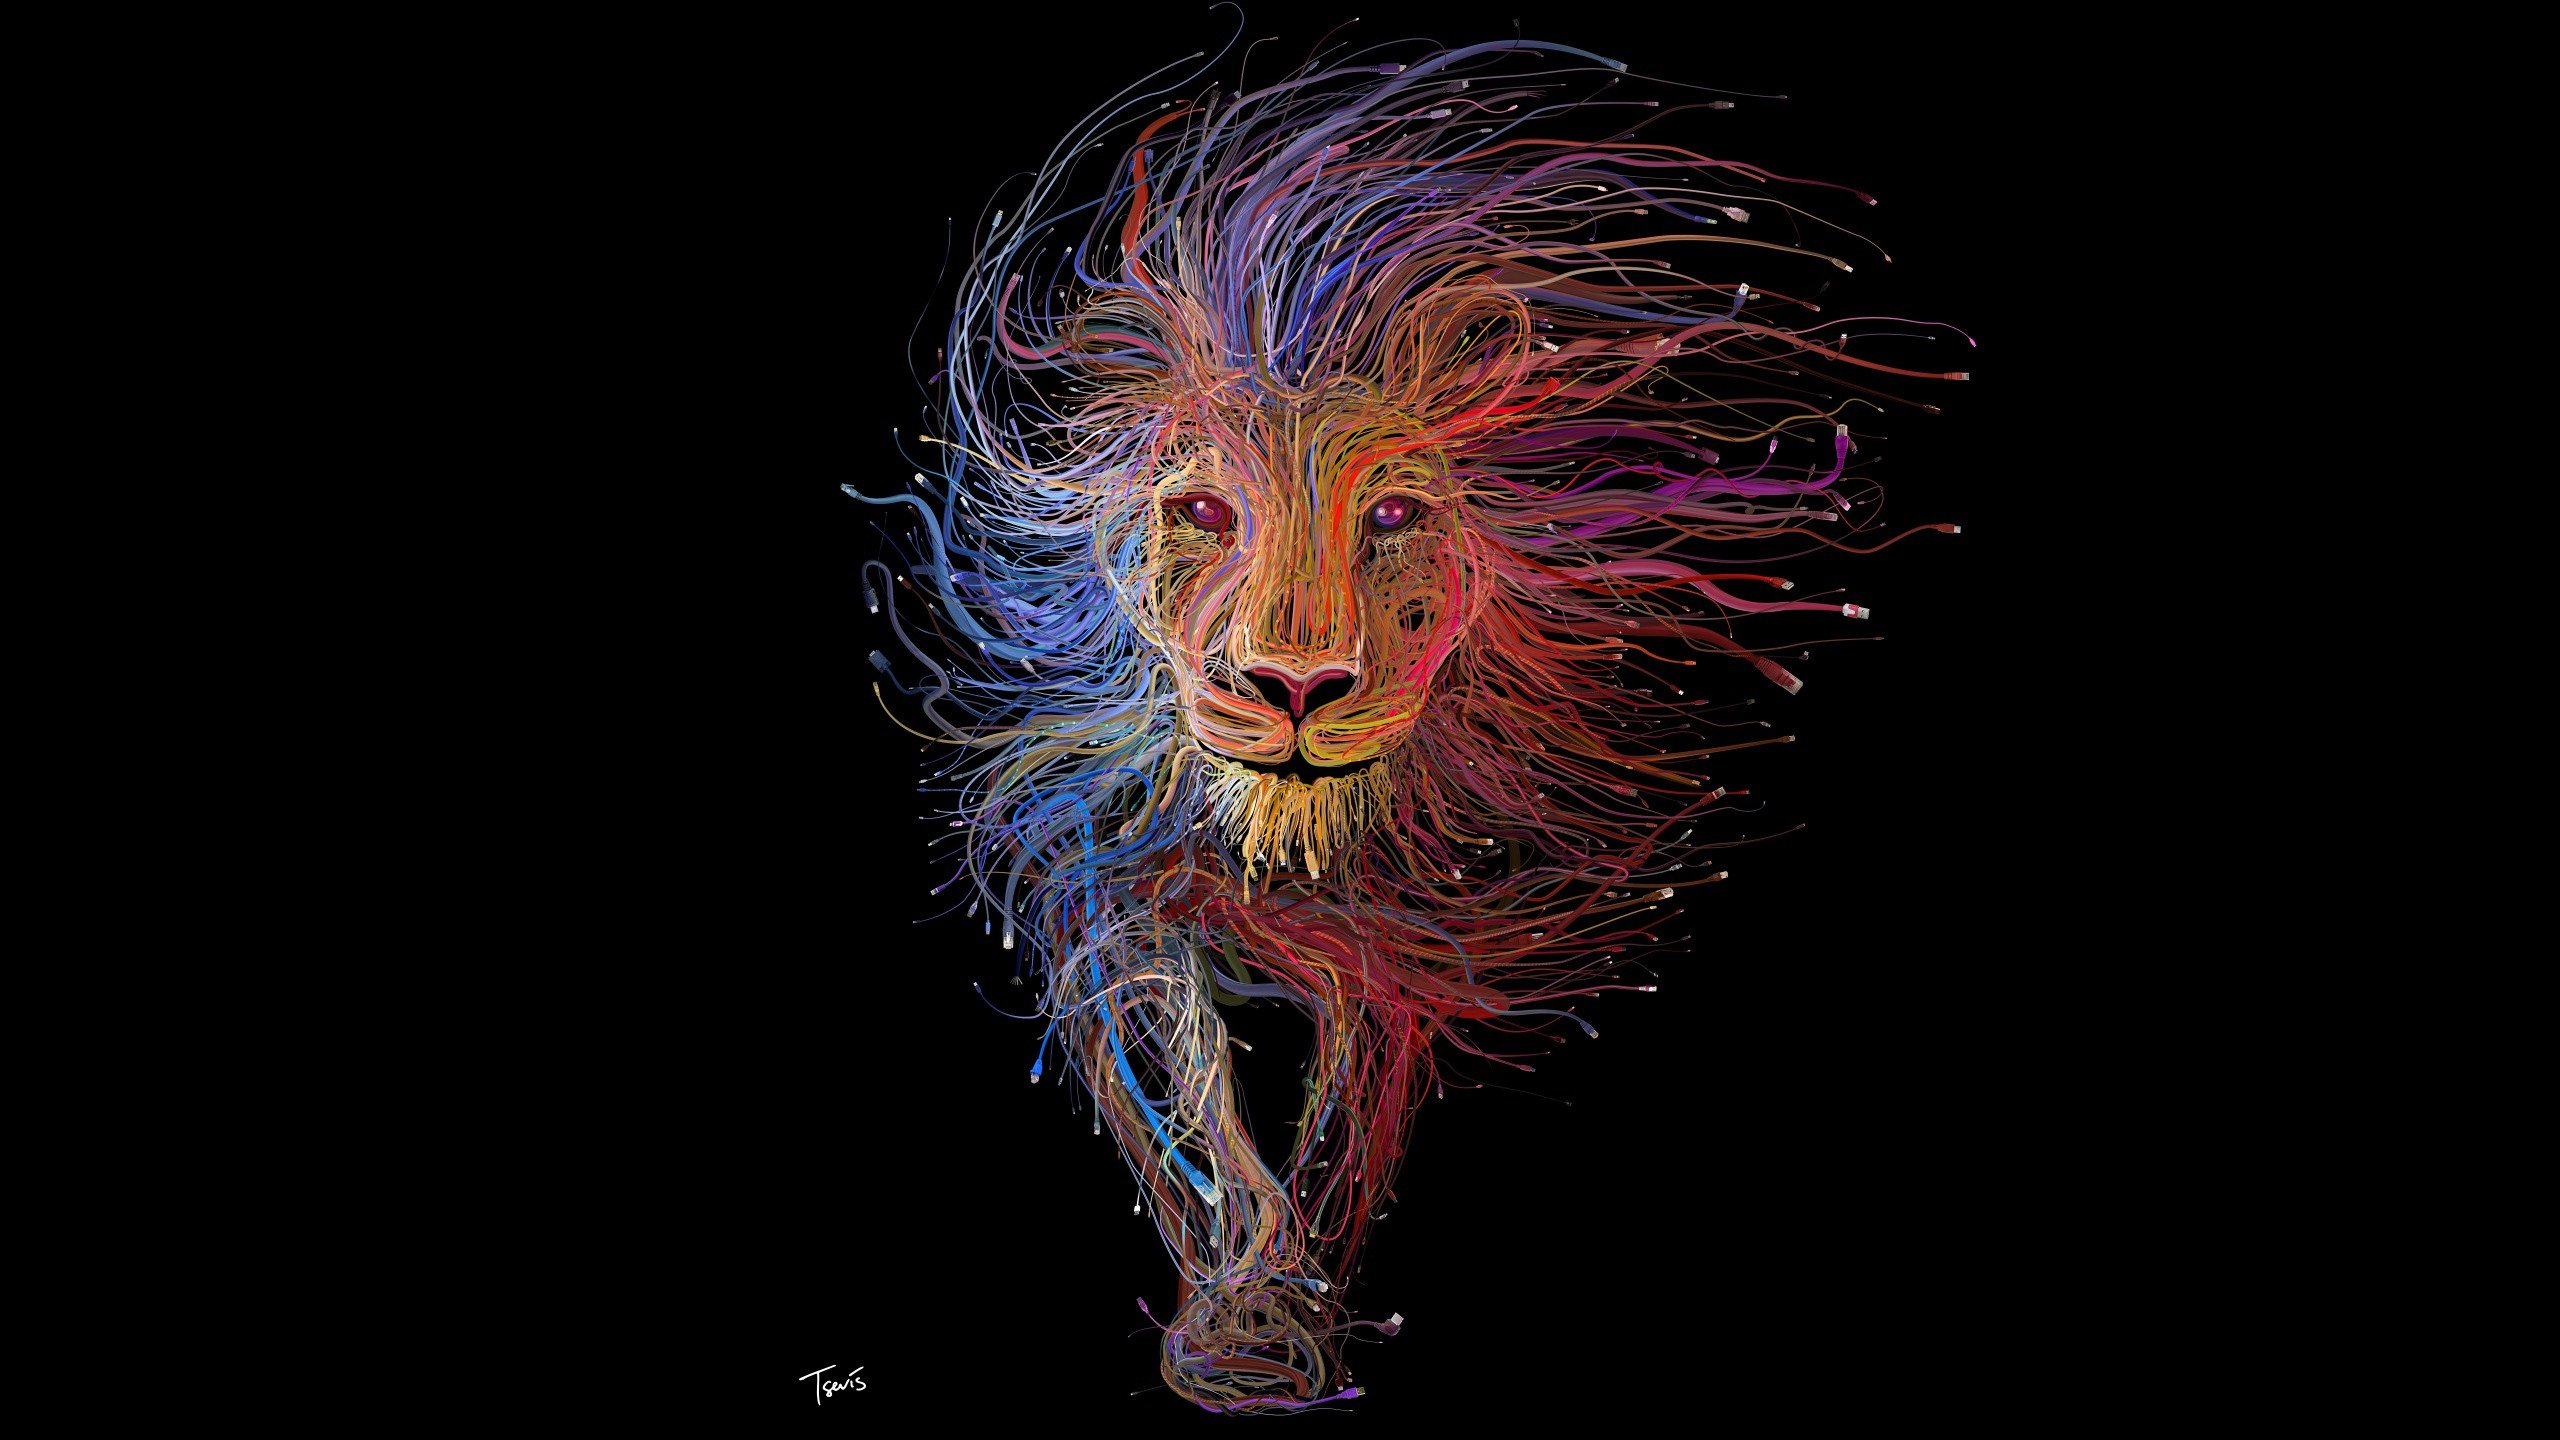 Lion 4k Wallpapers For Your Desktop Or Mobile Screen Free And Easy